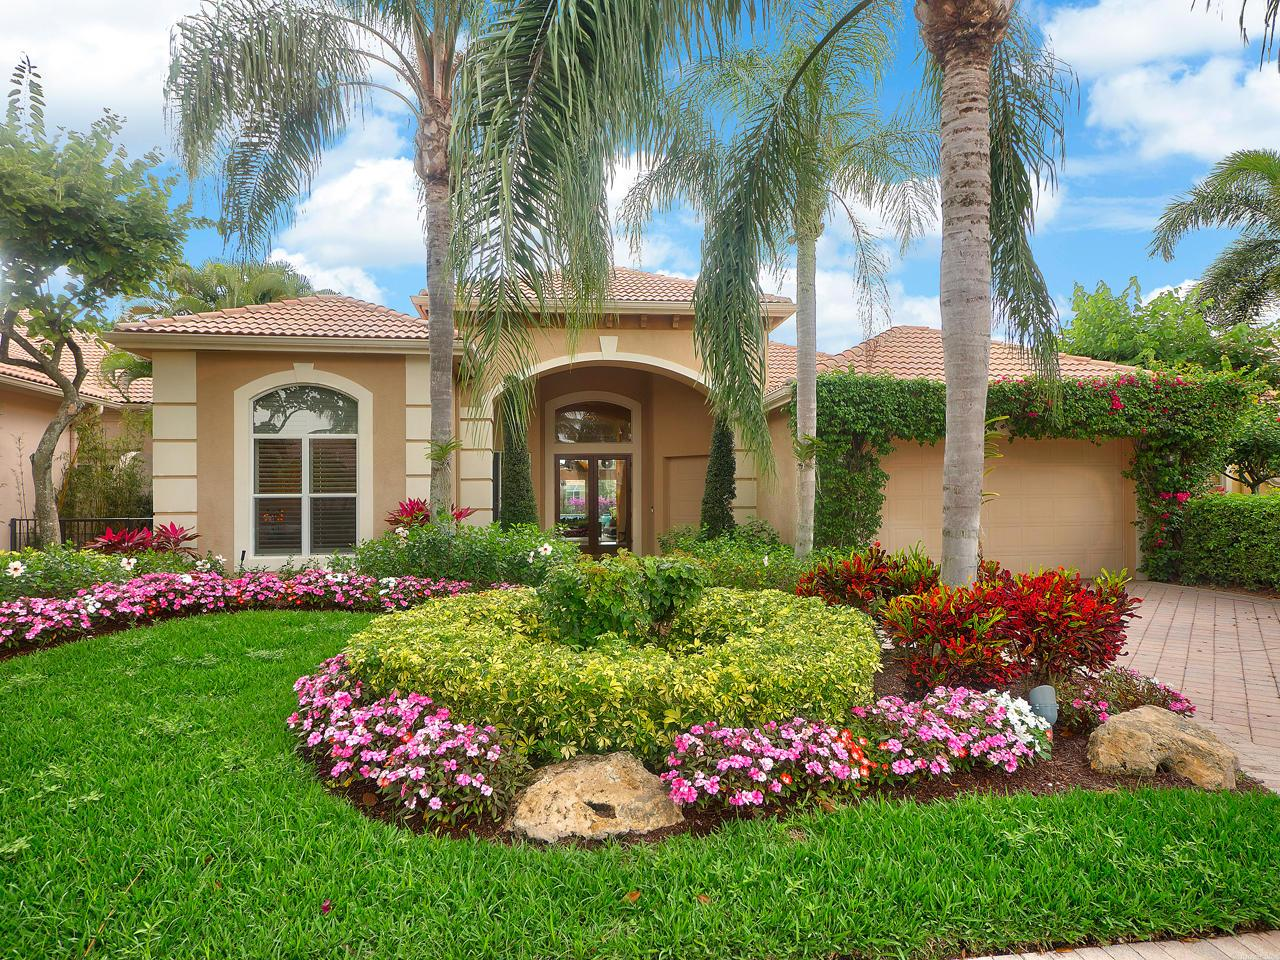 Ballenisles Homes for Sale & Real Estate, Palm Beach Gardens — ZipRealty